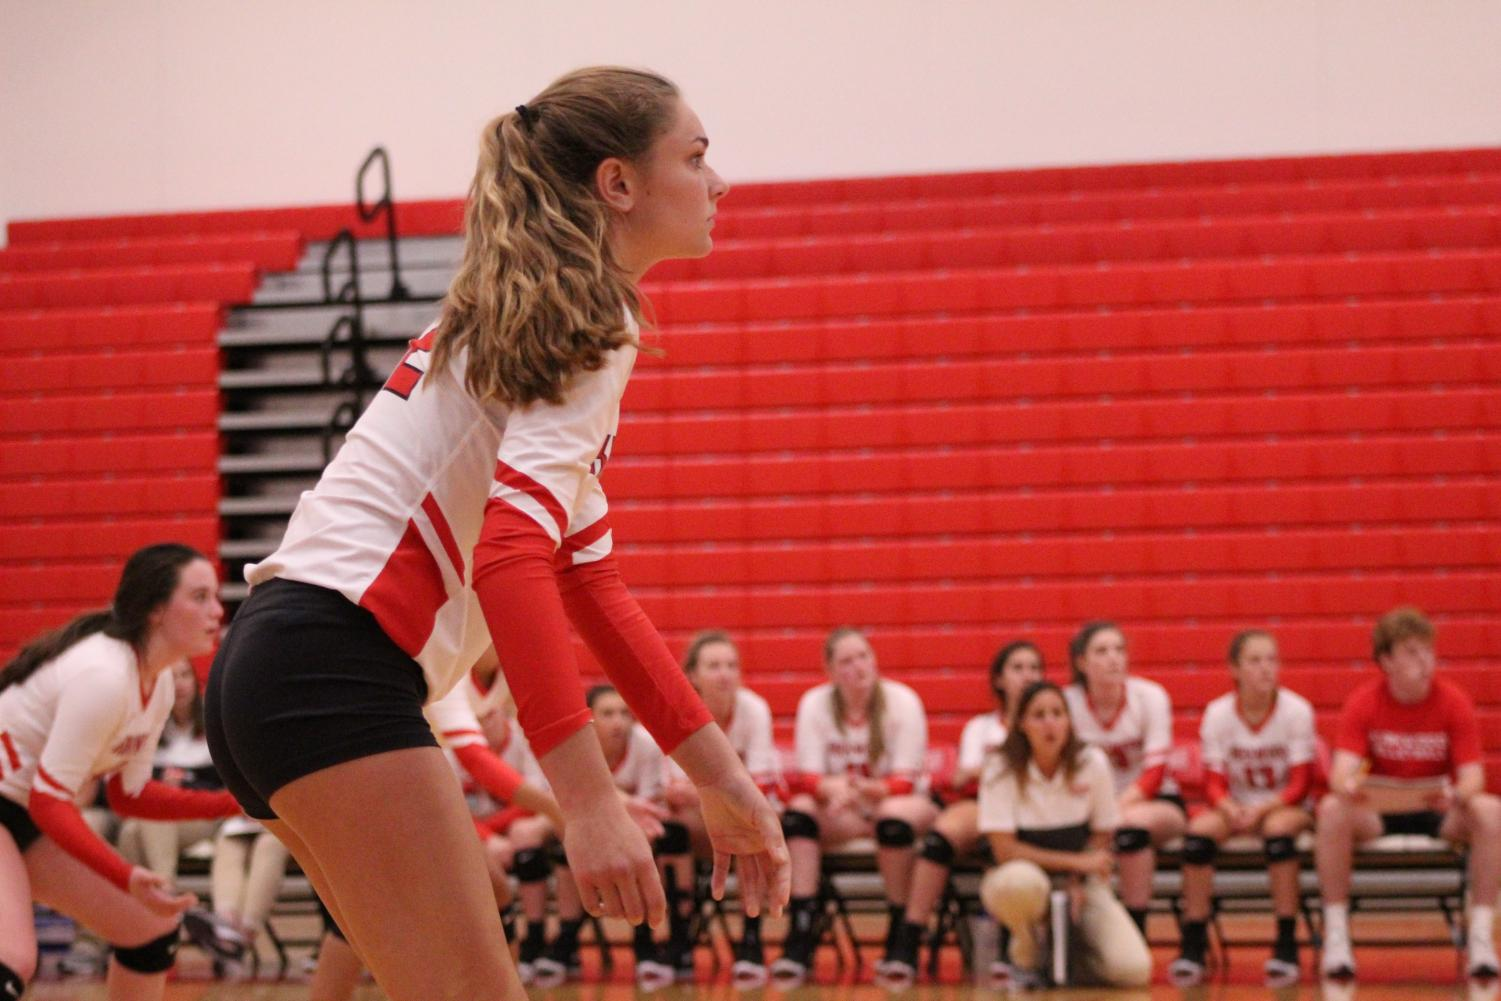 Amanda+Mobley%2C+grade+11%2C+waits+for+Ursuline+to+the+serve+the+ball%2C+in+varsity+game.+